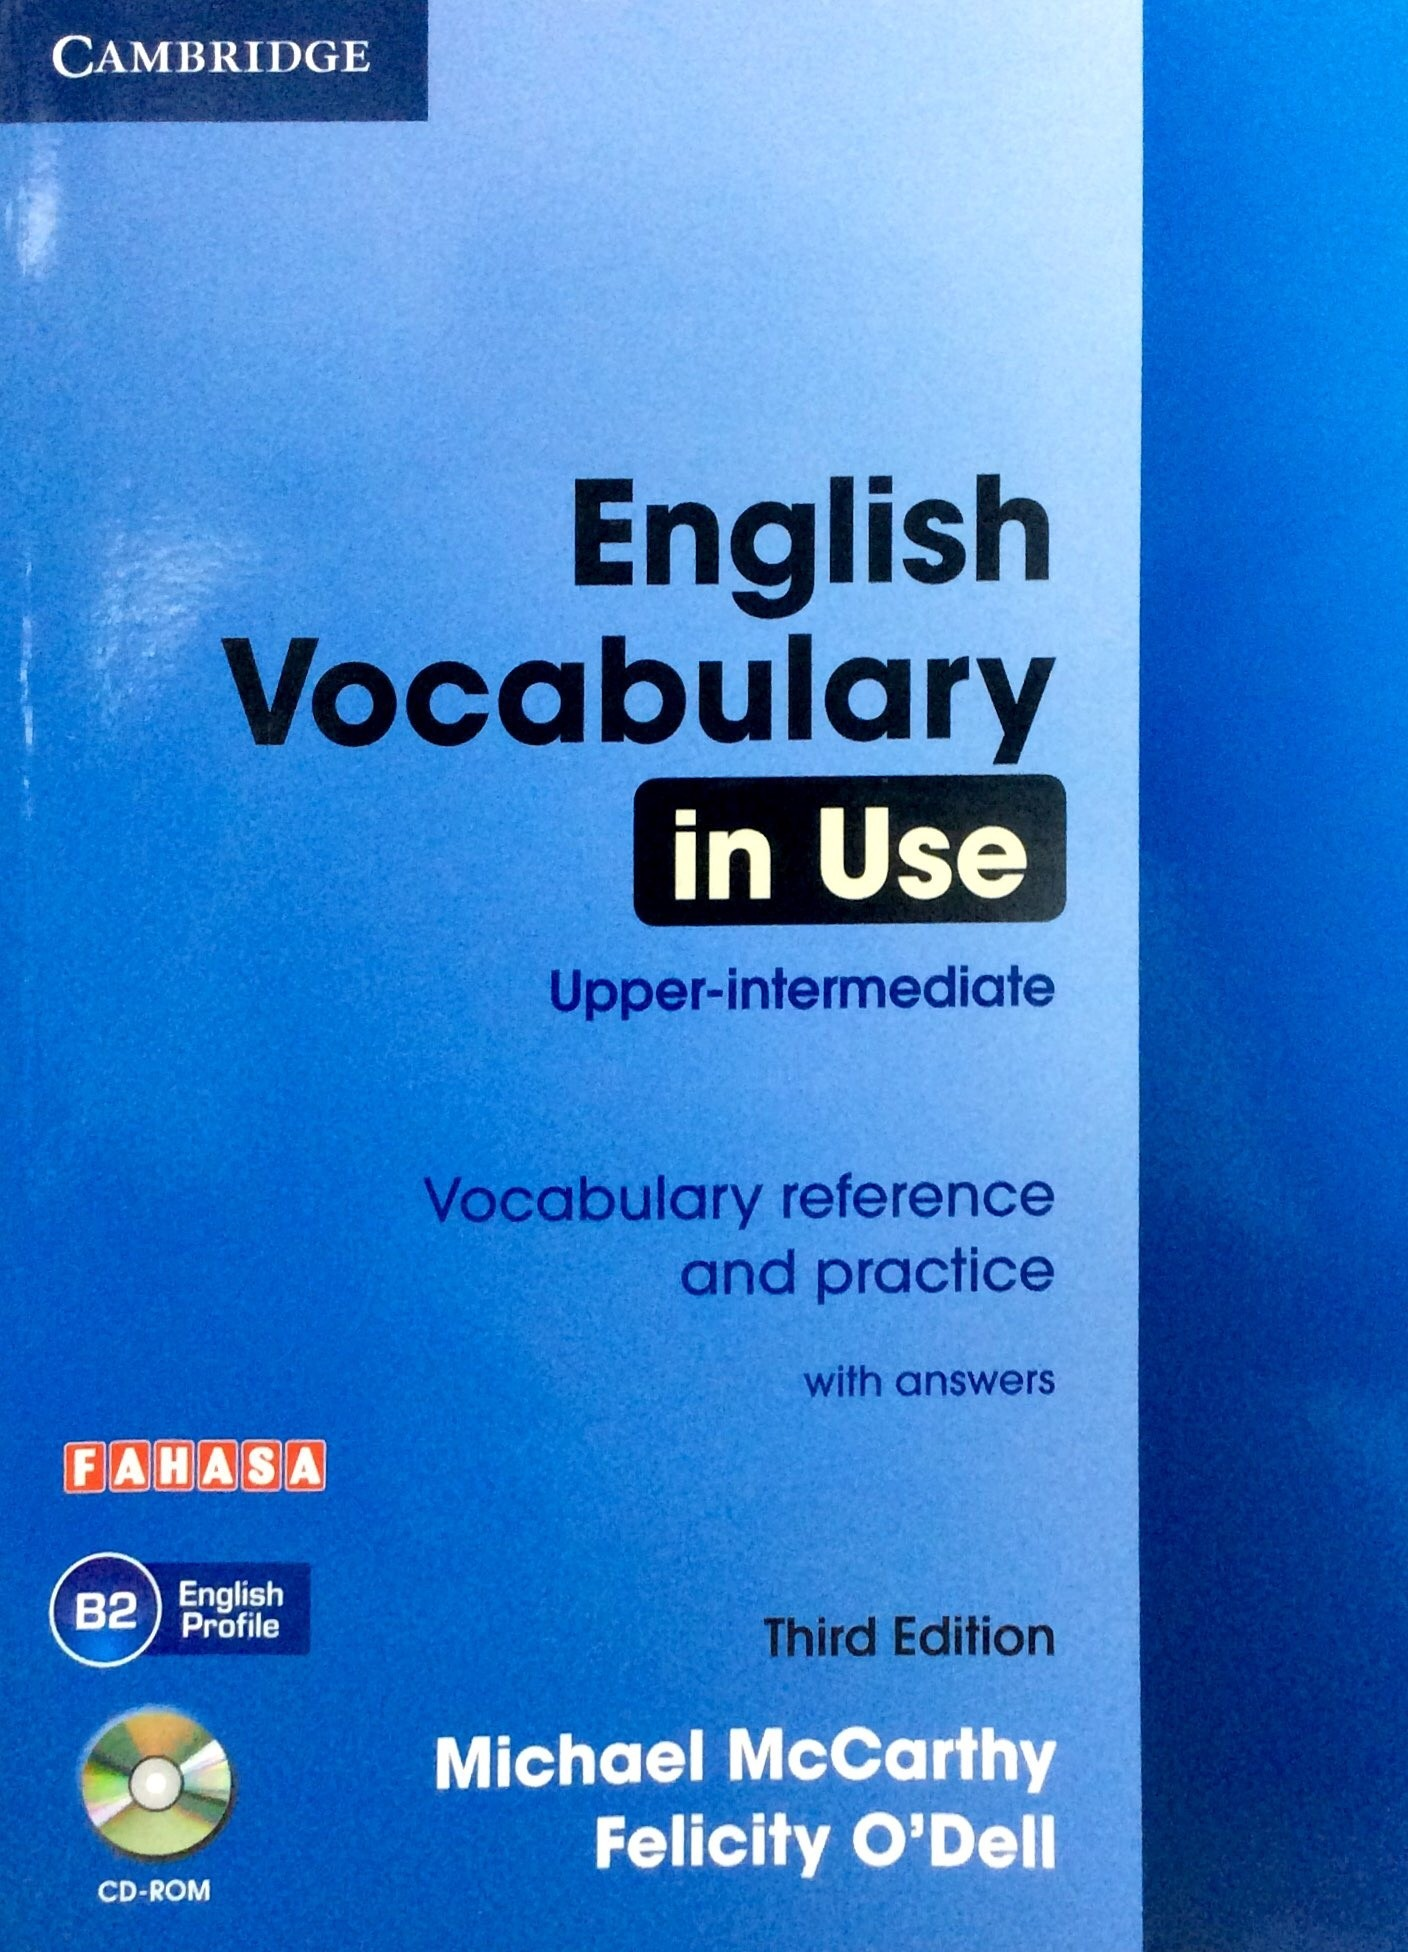 English Vocabulary in Use - Upper Intermediate (Sách kèm CD)